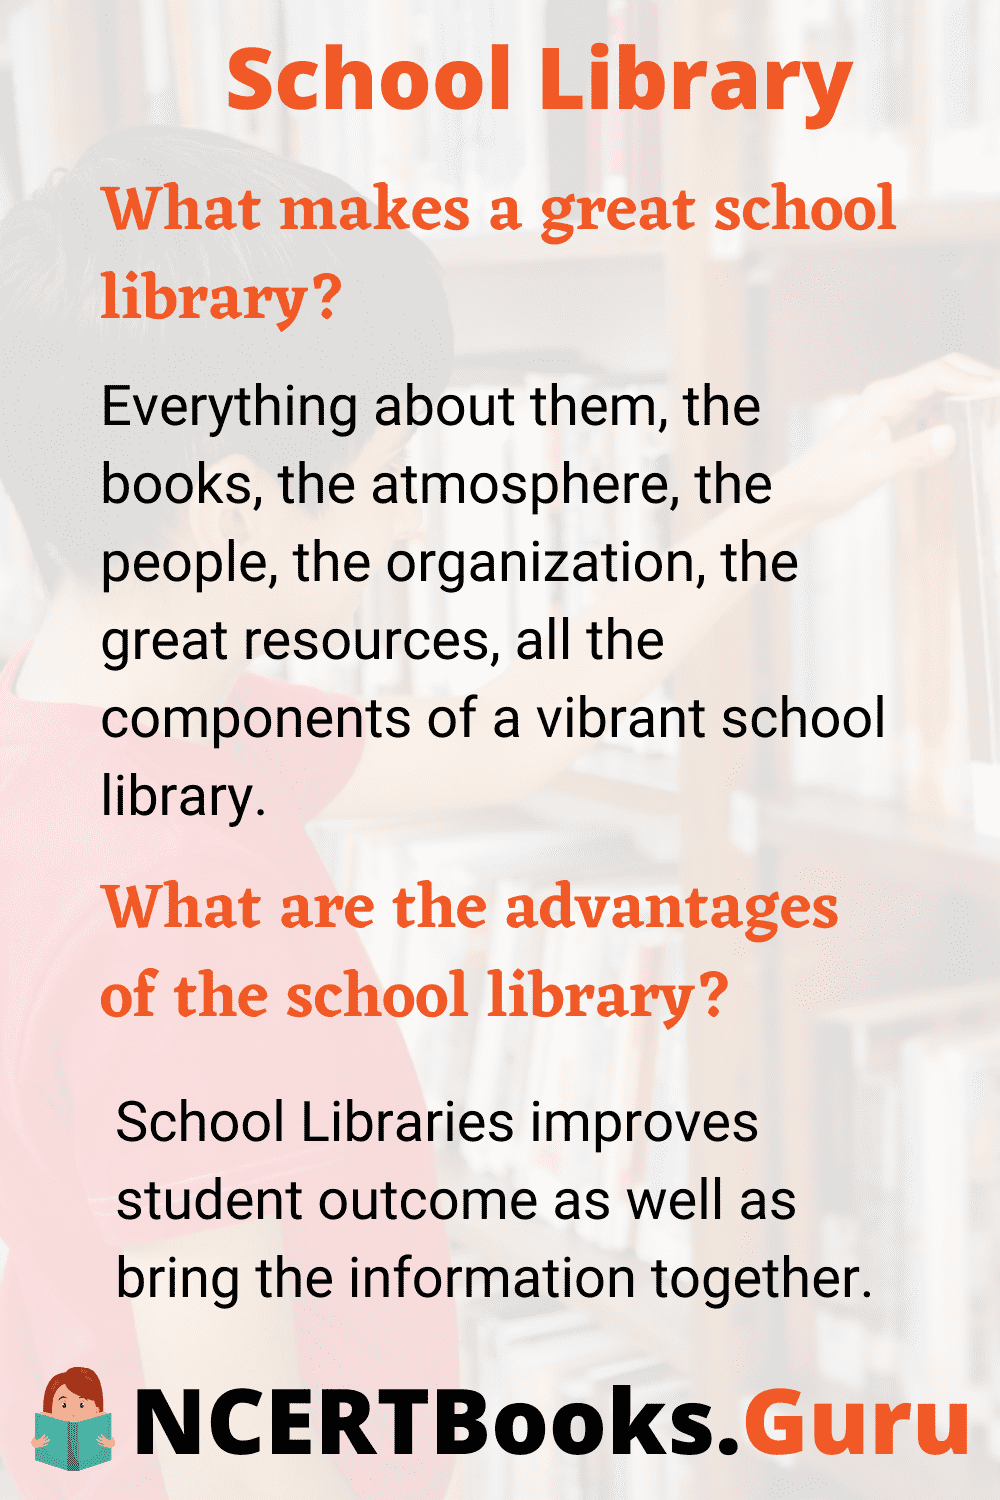 What makes a great school library